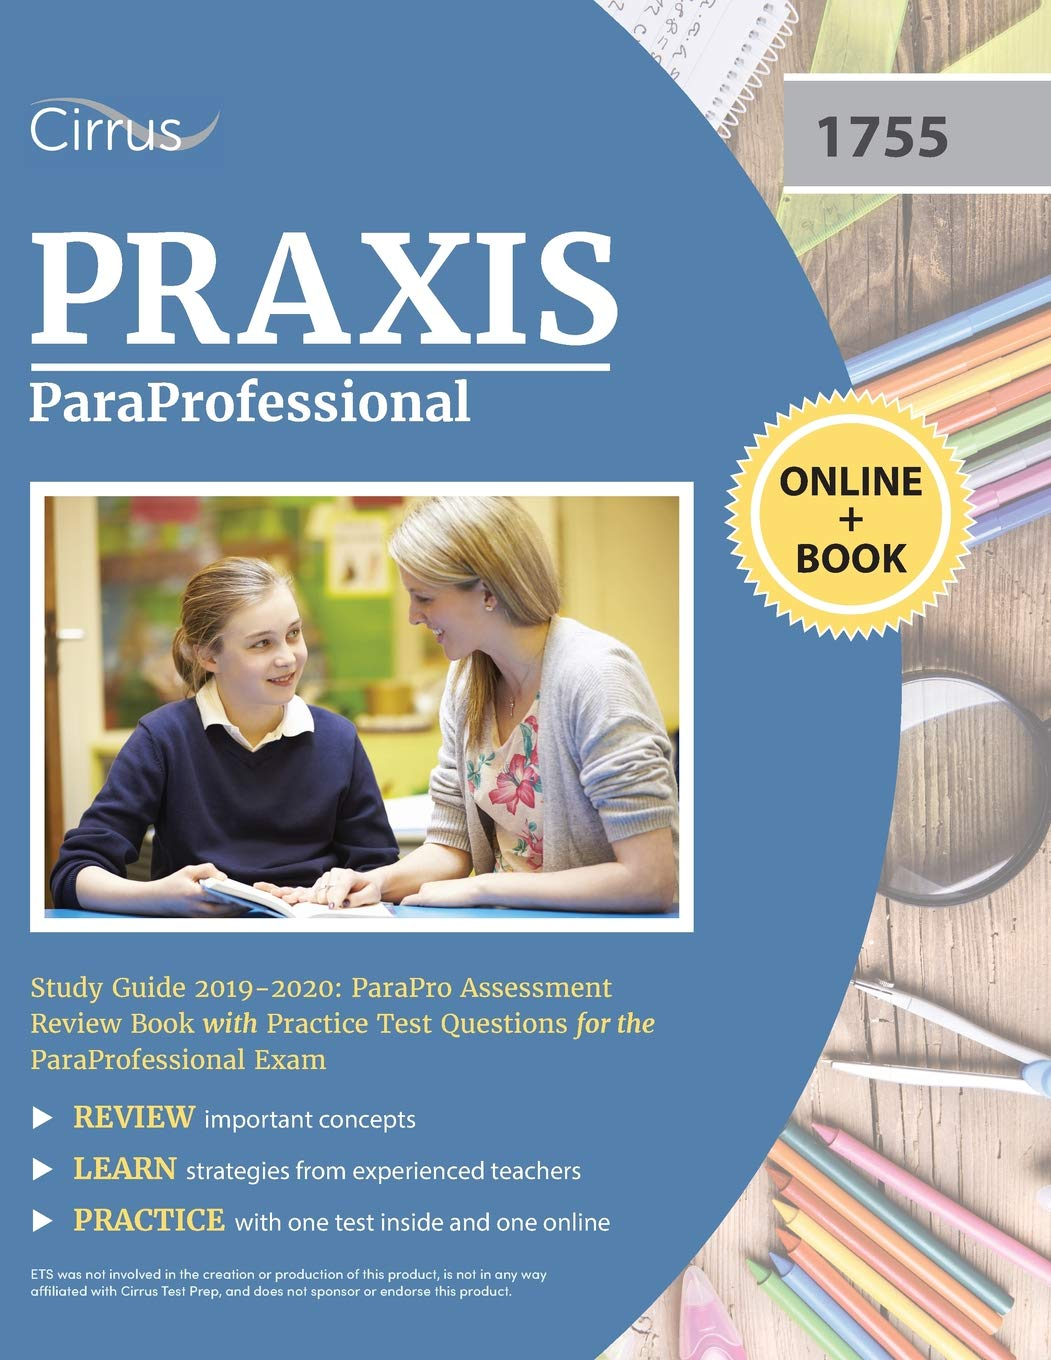 Paraprofessional study guide 2018: parapro assessment review book.